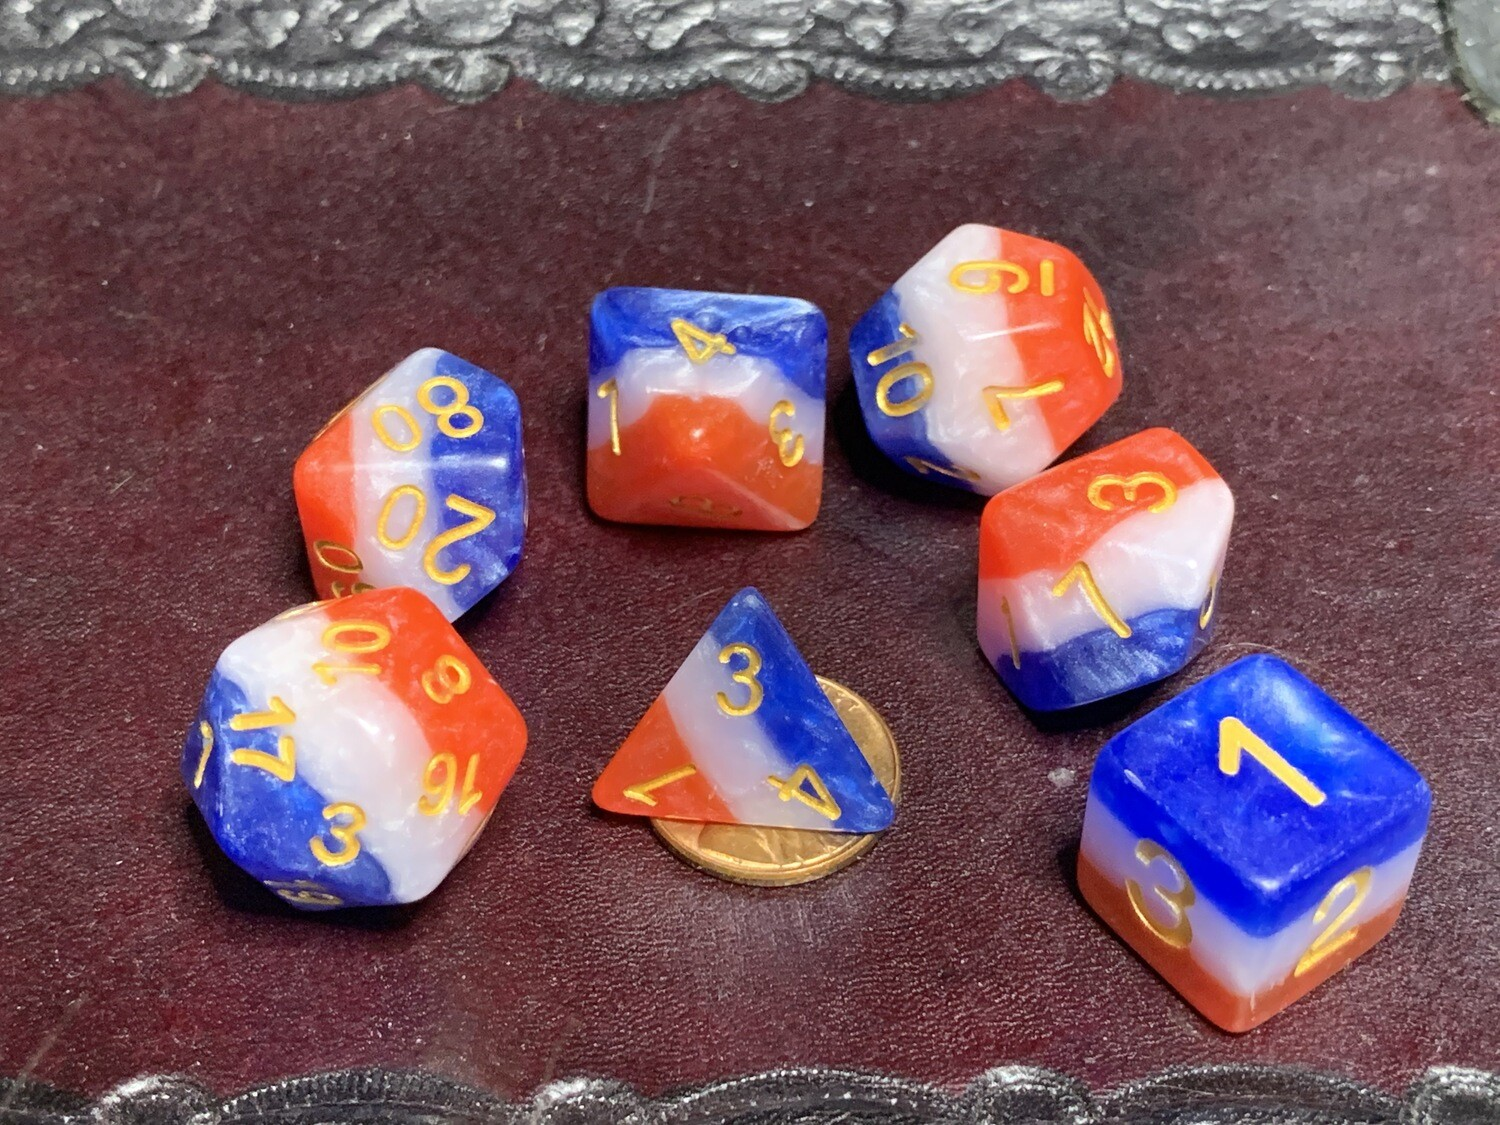 Old Glory 7 Piece Dice Polyhedral Set Tabletop RPG Gaming Board Card Games